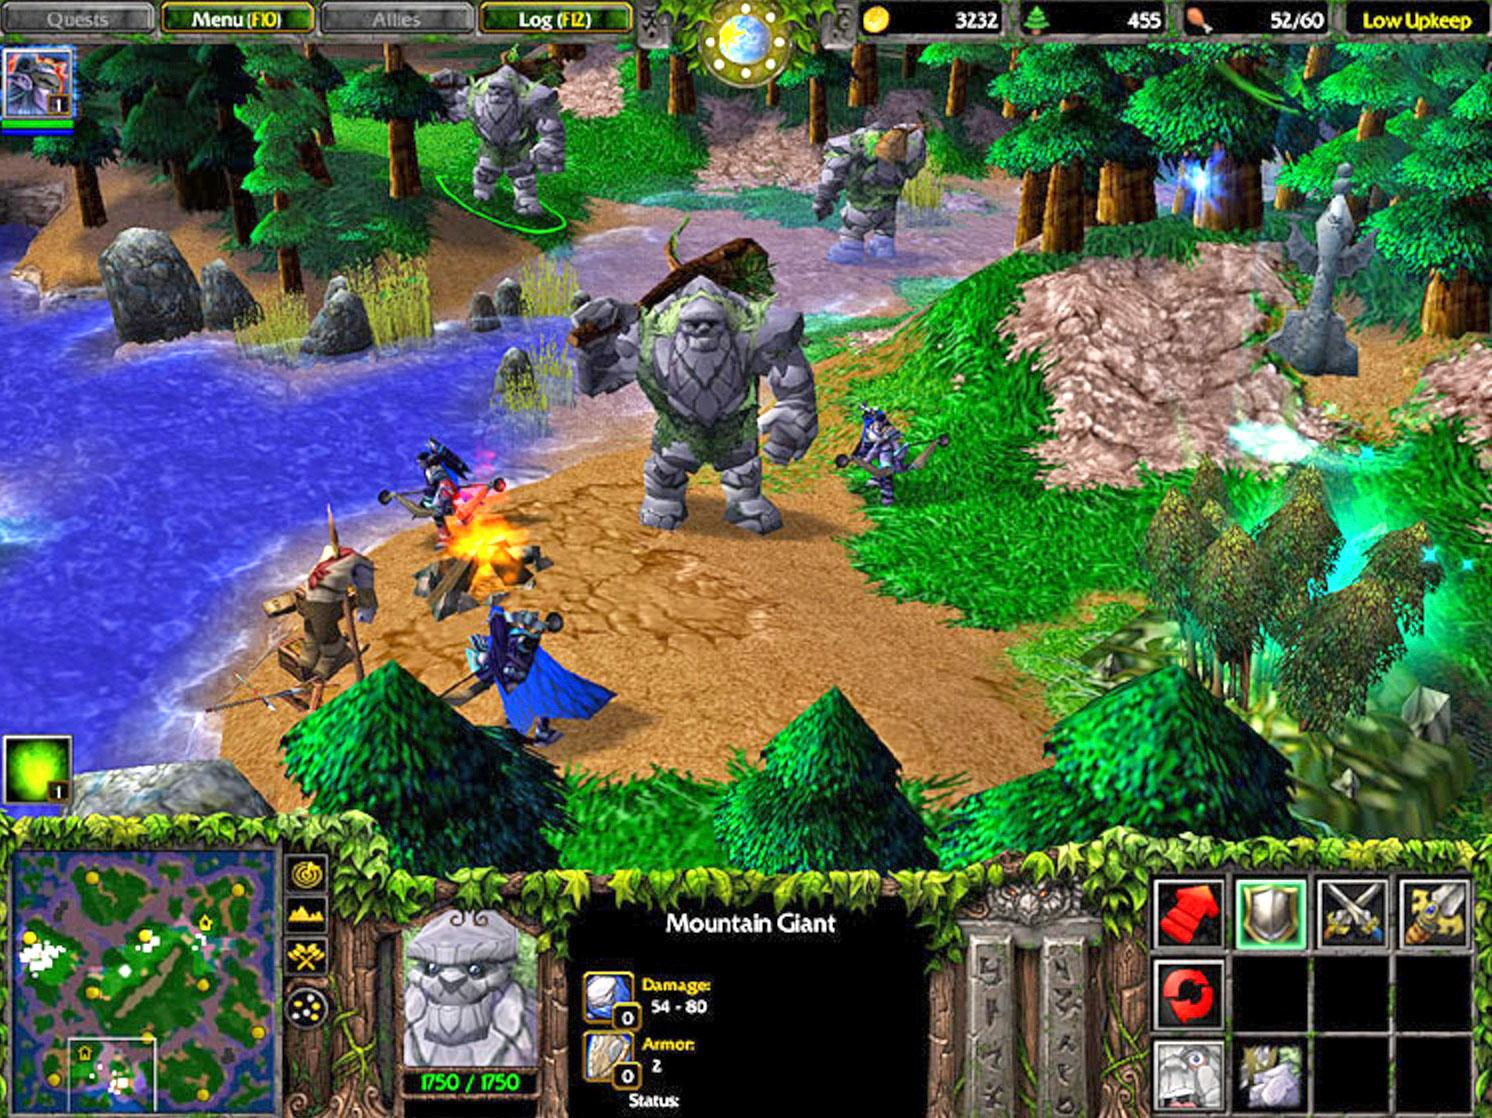 Blizzard Preps Aging Warcraft 3 Multiplayer For Future Changes Engadget